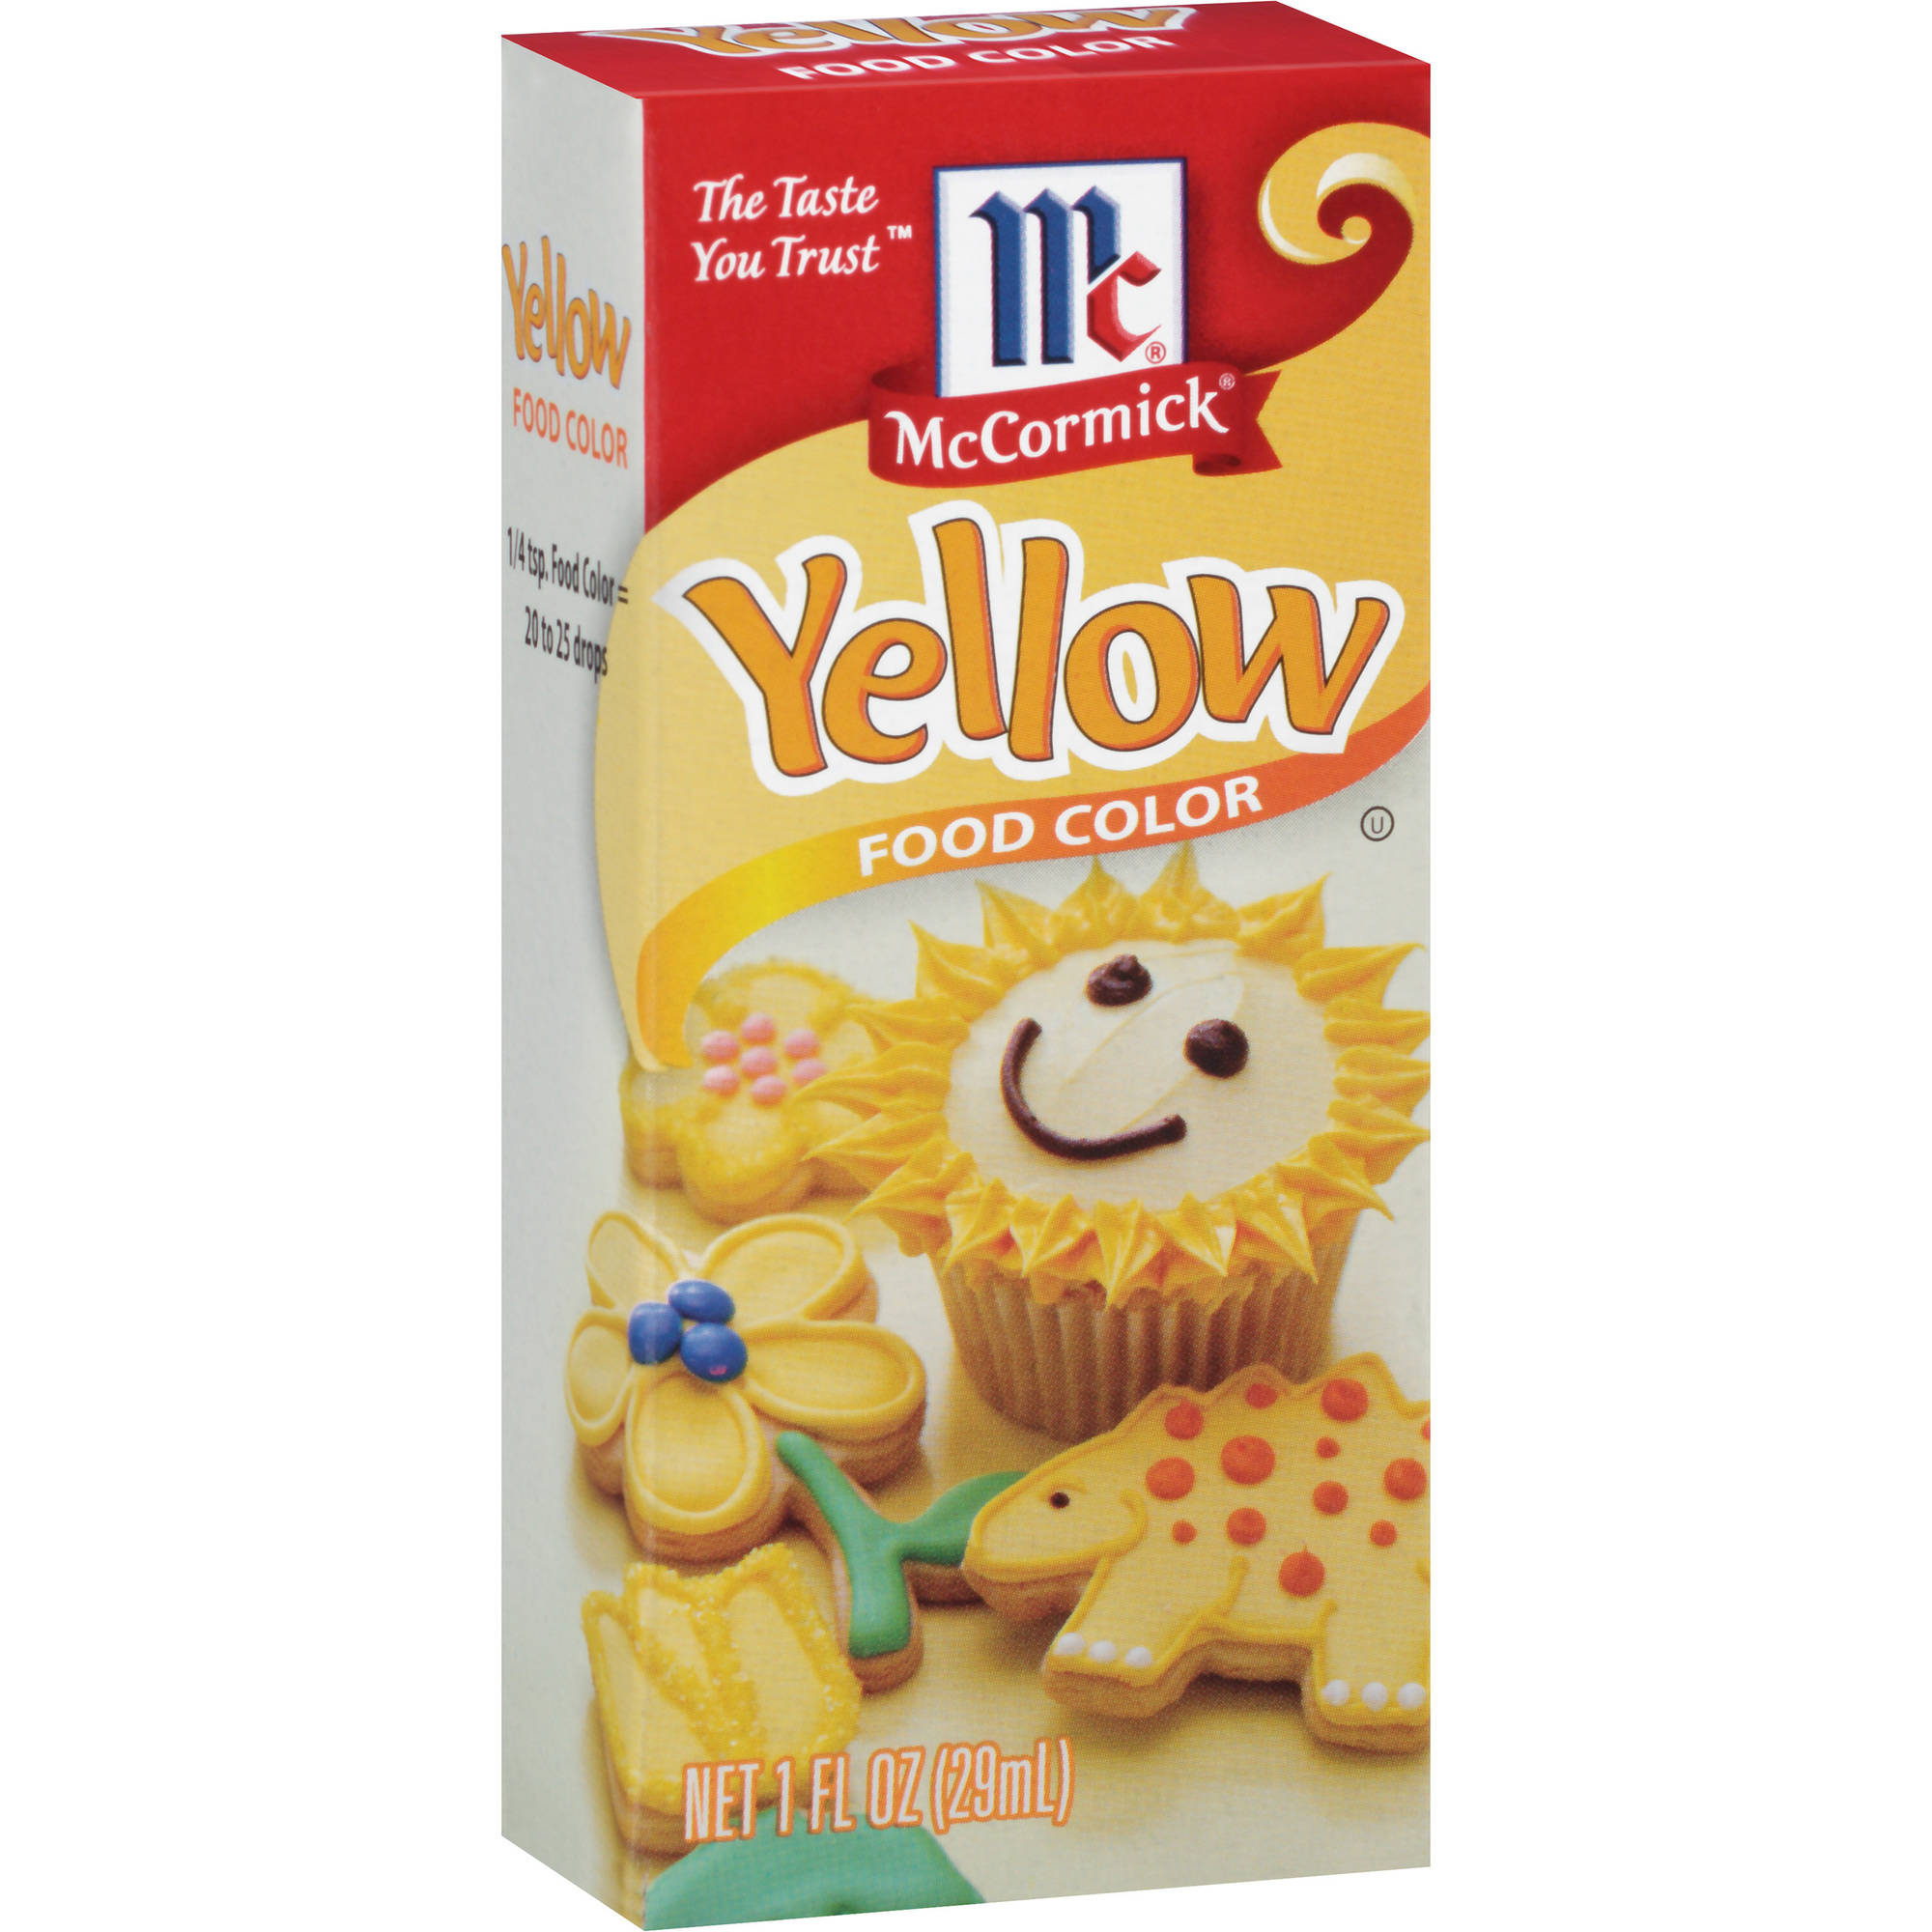 McCormick Yellow Food Color, 1 oz